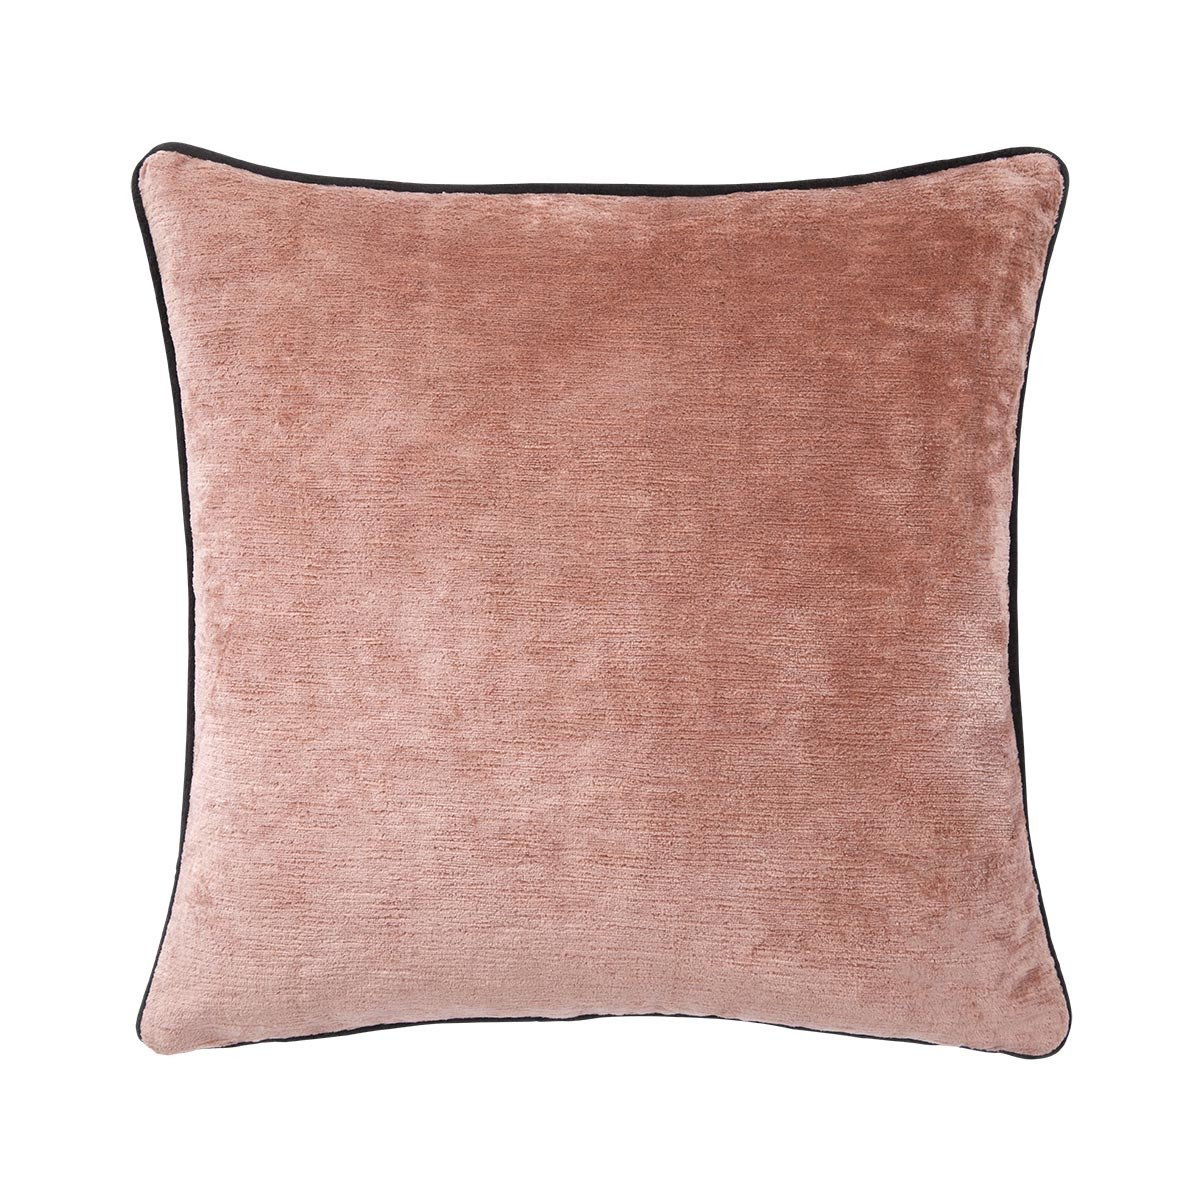 Boromee Decorative Pillow Square